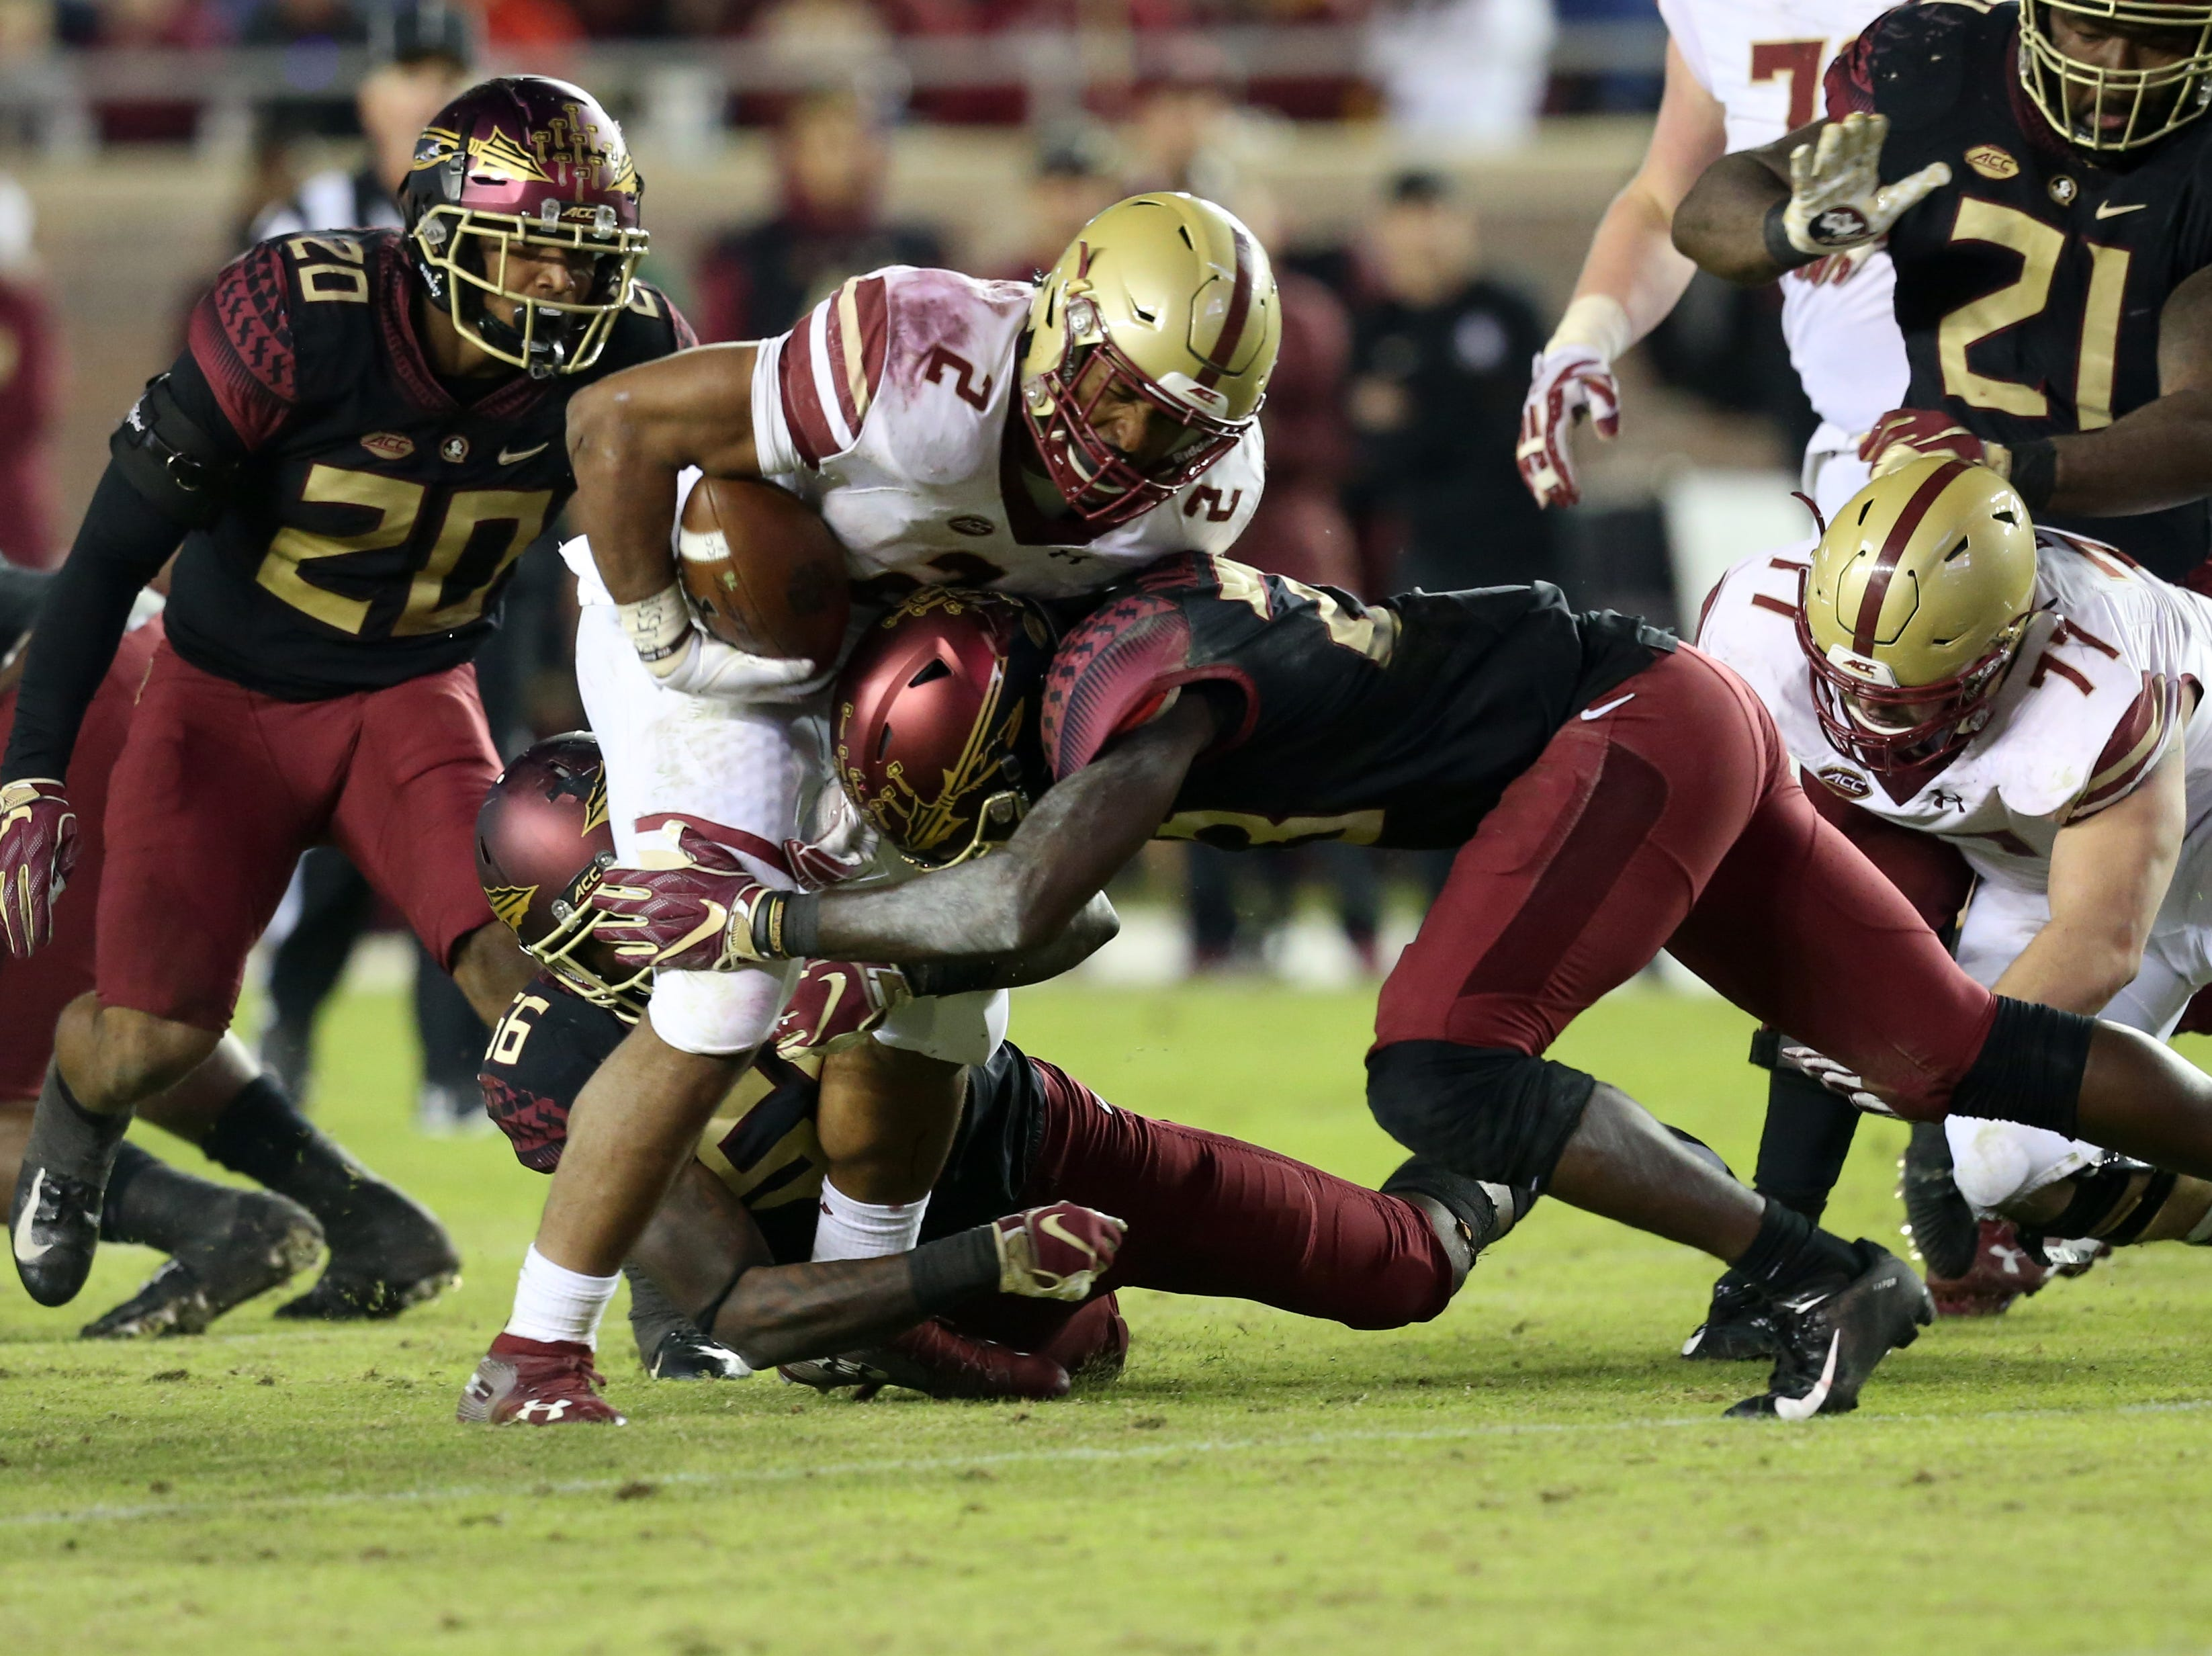 The Florida State Seminoles face off against the Boston College Eagles at Doak S. Campbell Stadium, Saturday, Nov. 17, 2018.